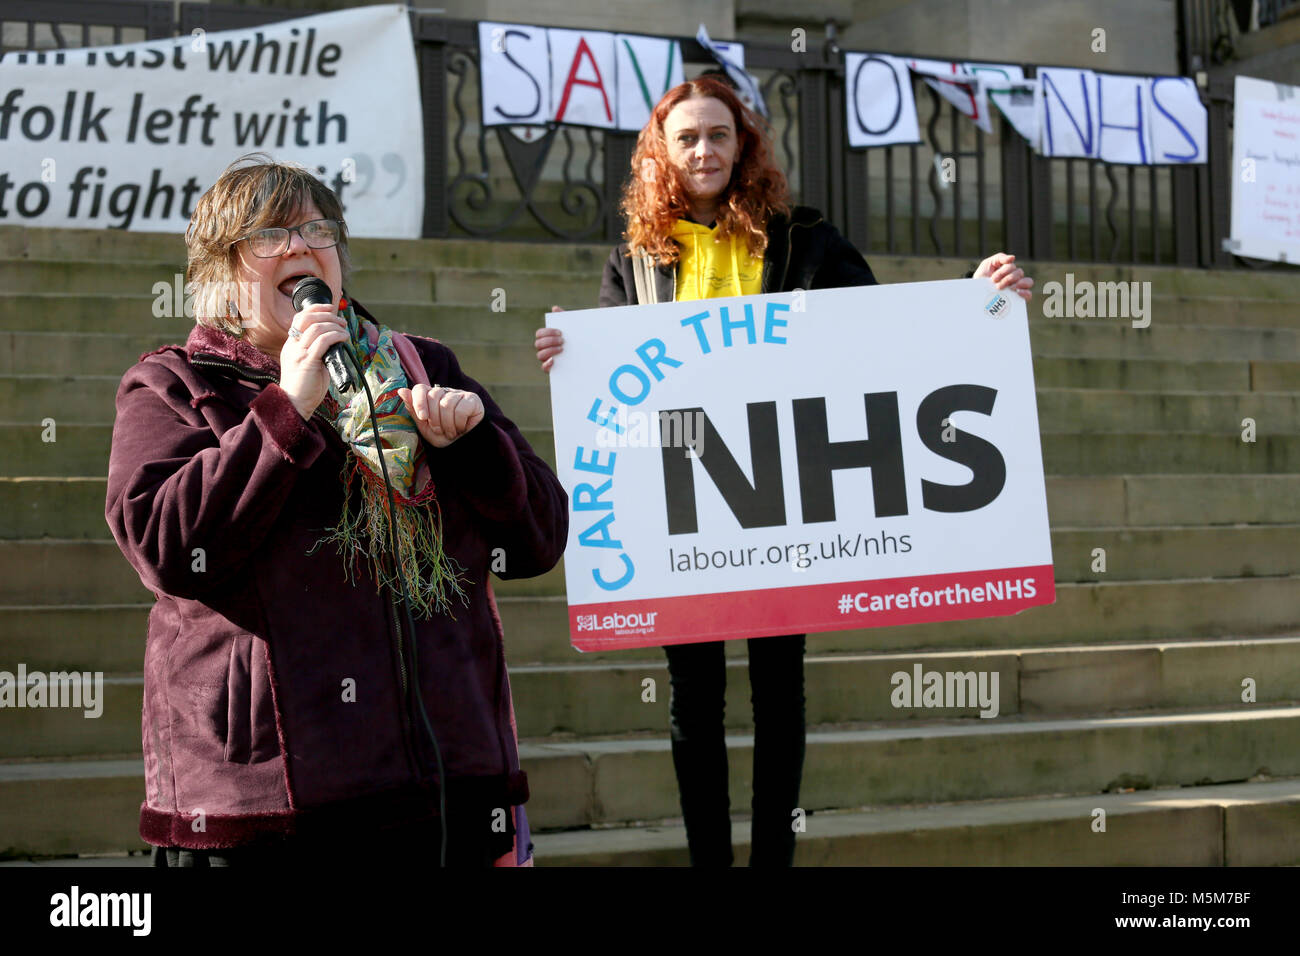 Karen Reisman speaking at a rally to defend the NHS in Bolton, 24th February, 2018 (C)Barbara Cook/Alamy Live News - Stock Image